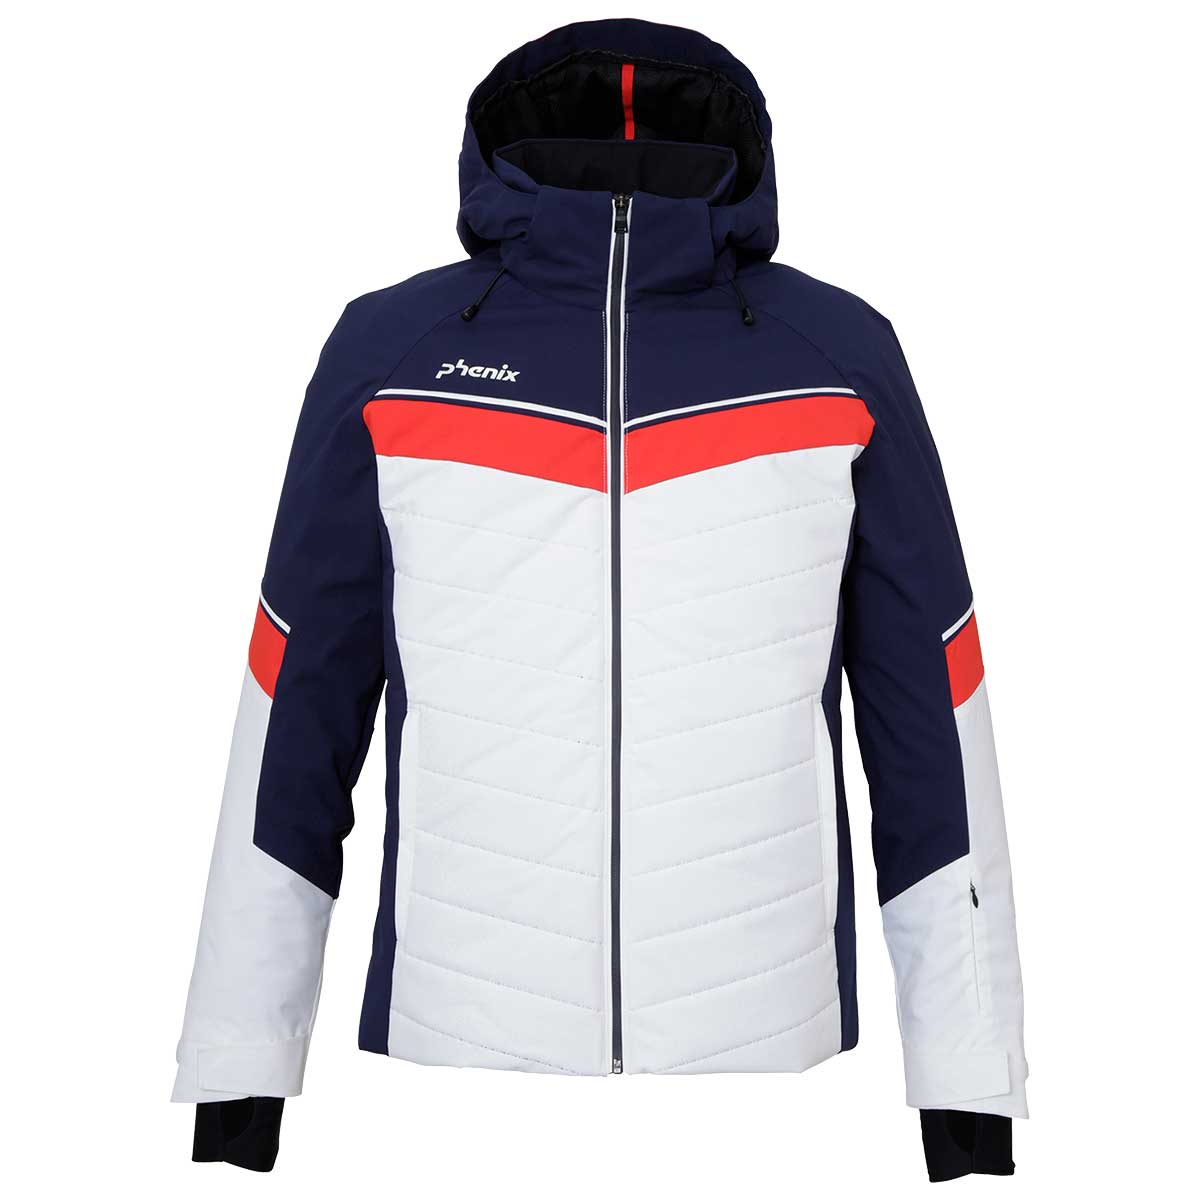 Phenix men's Stratos Jacket in White front view